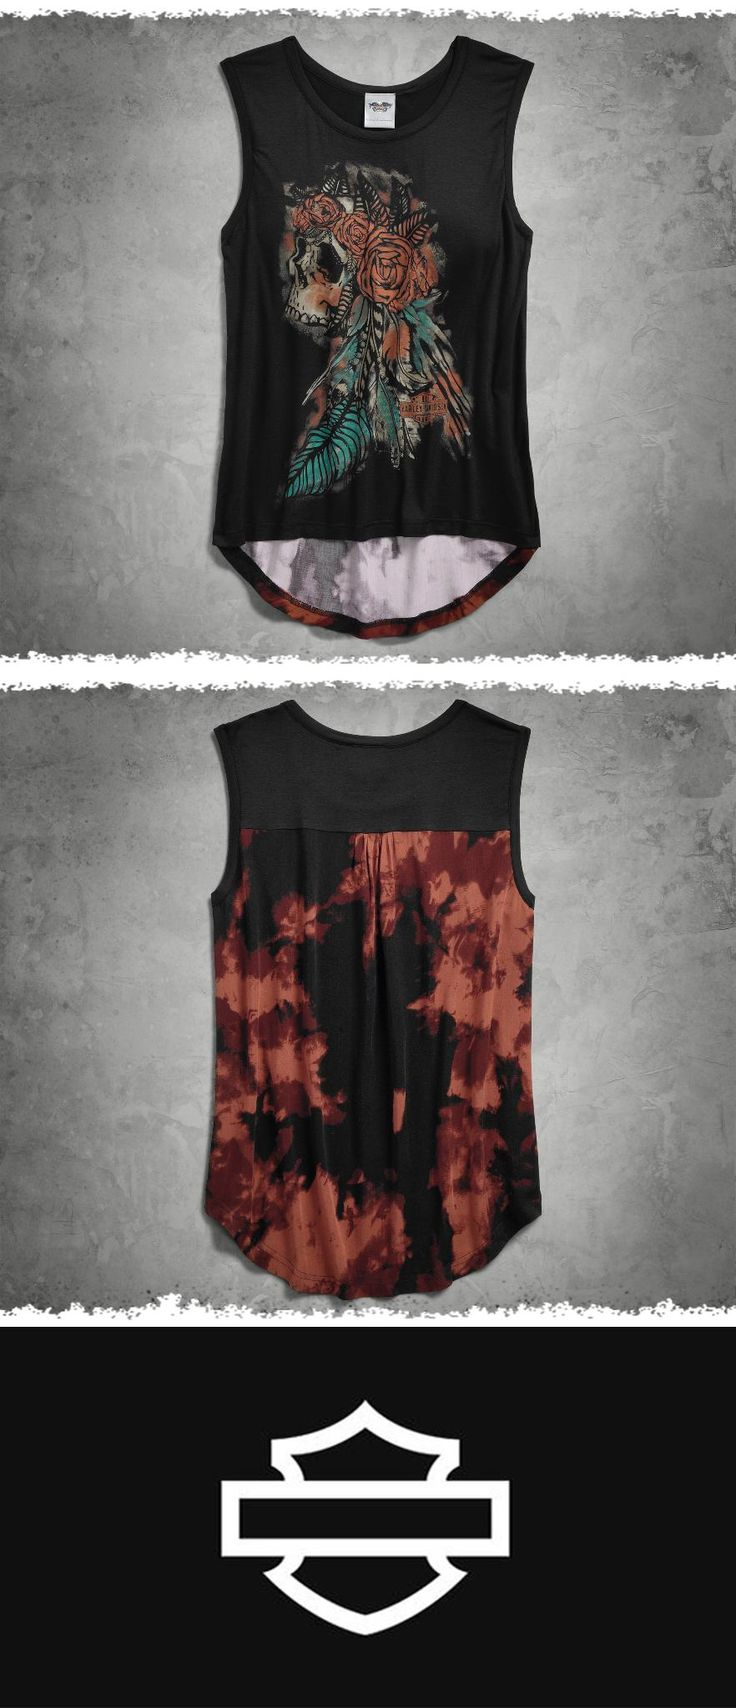 Mix it up. That's what we did. | Harley-Davidson Women's Tie-Dye Back Tank